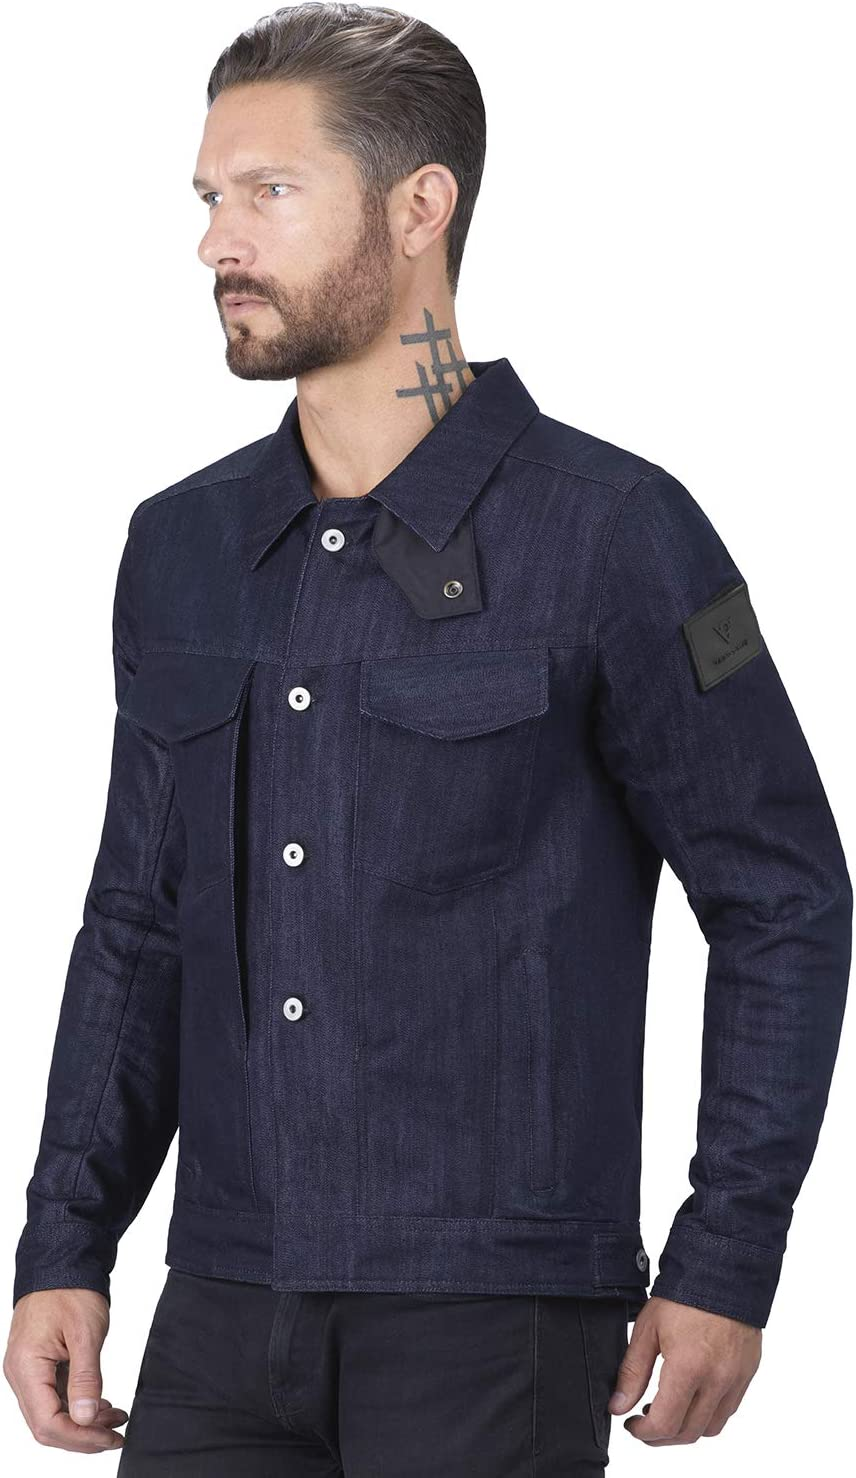 Viking Cycle Blue Denim Motorcycle Riding Over Shirt for Men Large